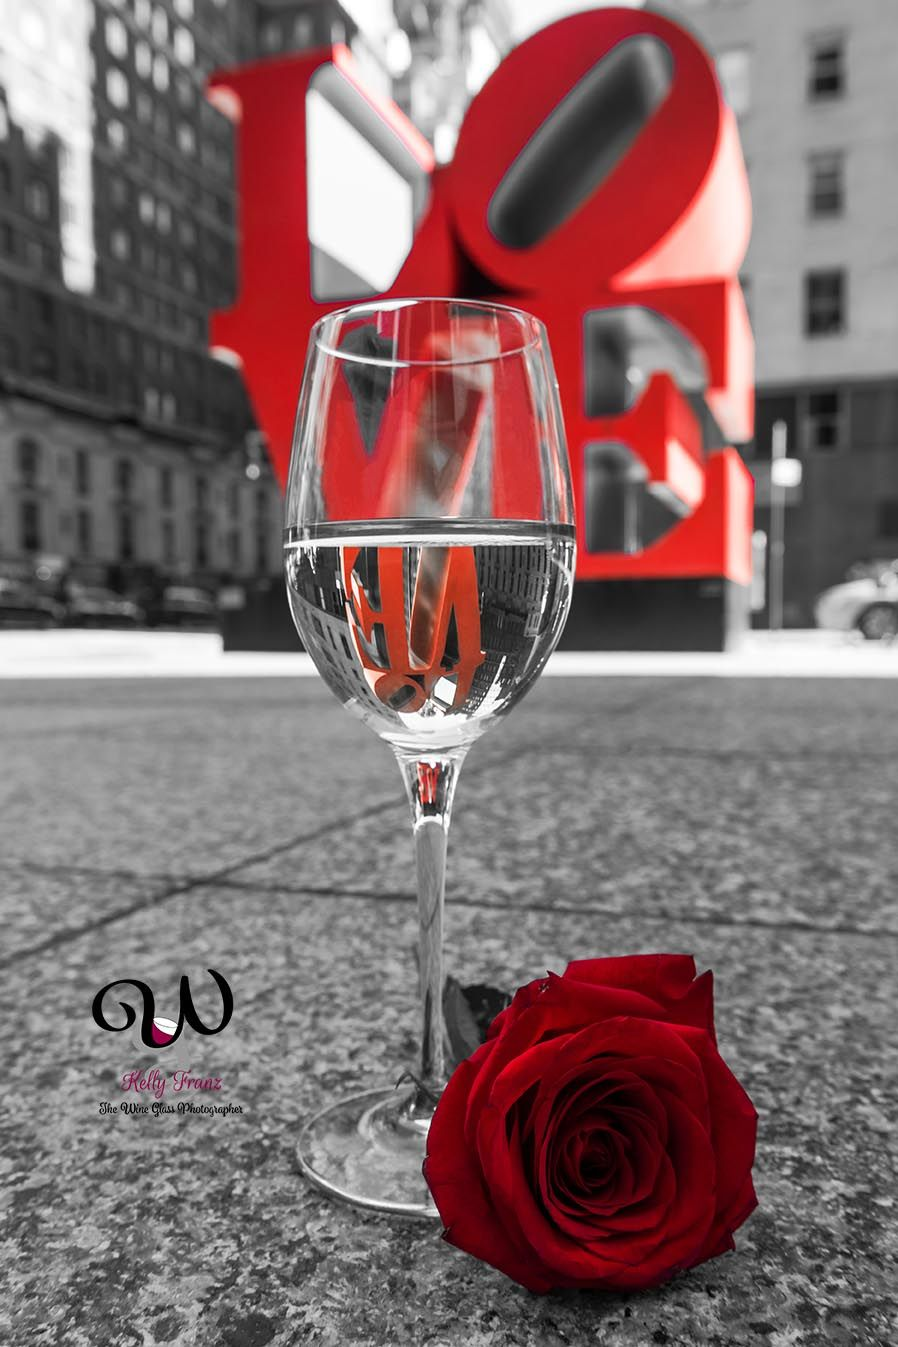 Pin By Iveta Andreeva On Relax Wine Glass Photography Wine Photography Wine Design